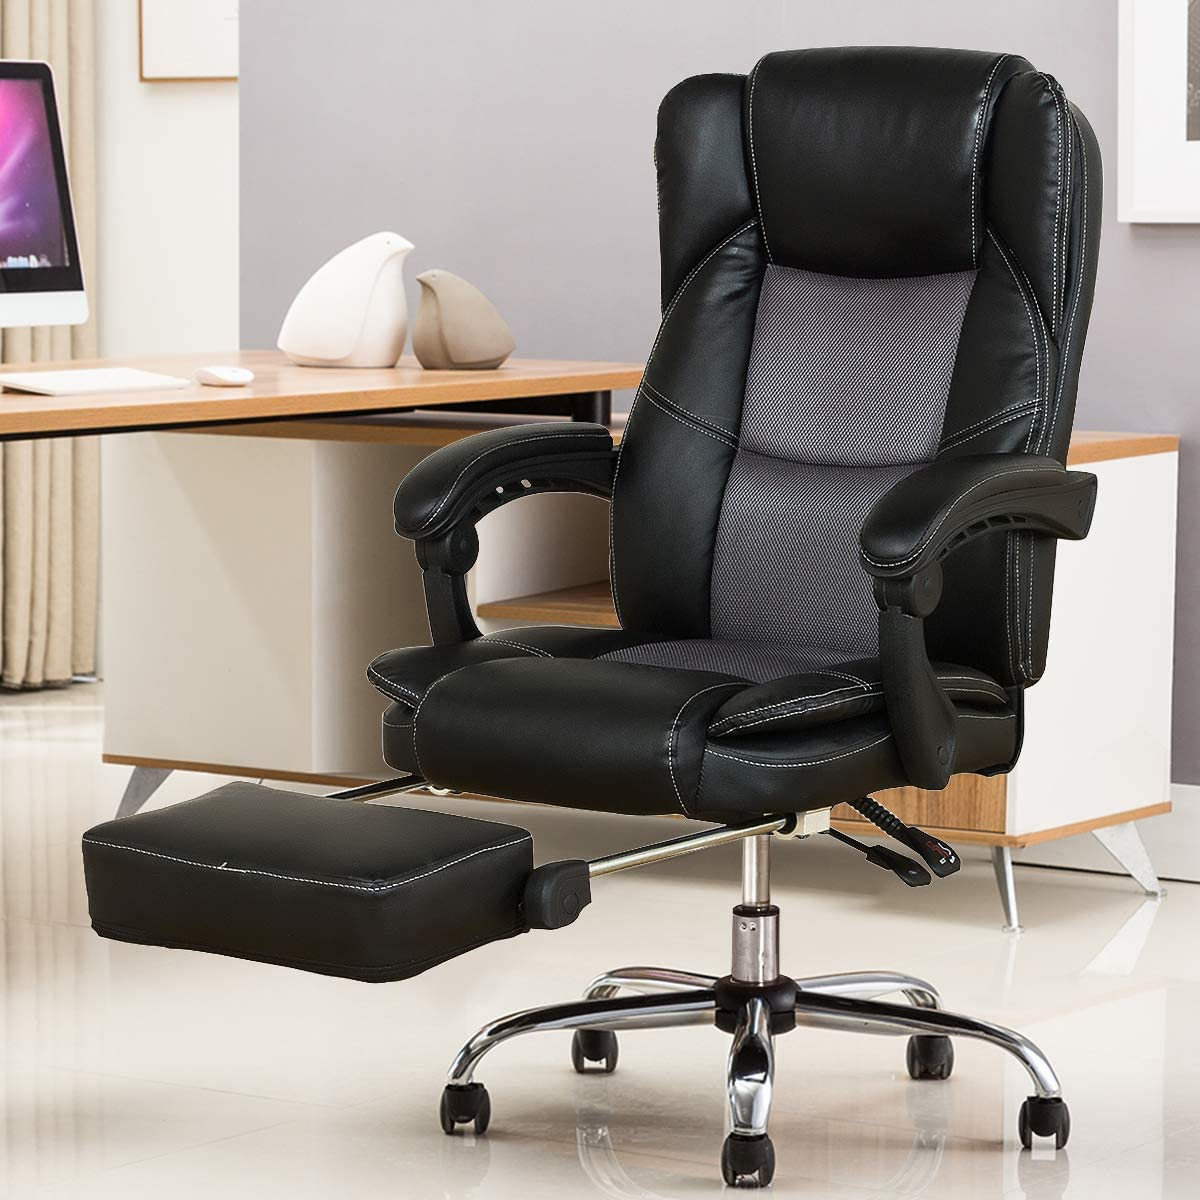 YAMASORO Reclining Office Chair – High Back Executive Chair with Adjustable Angle Recline Locking System and Footrest, Comfort and Ergonomic Design for Lumbar Support,Black